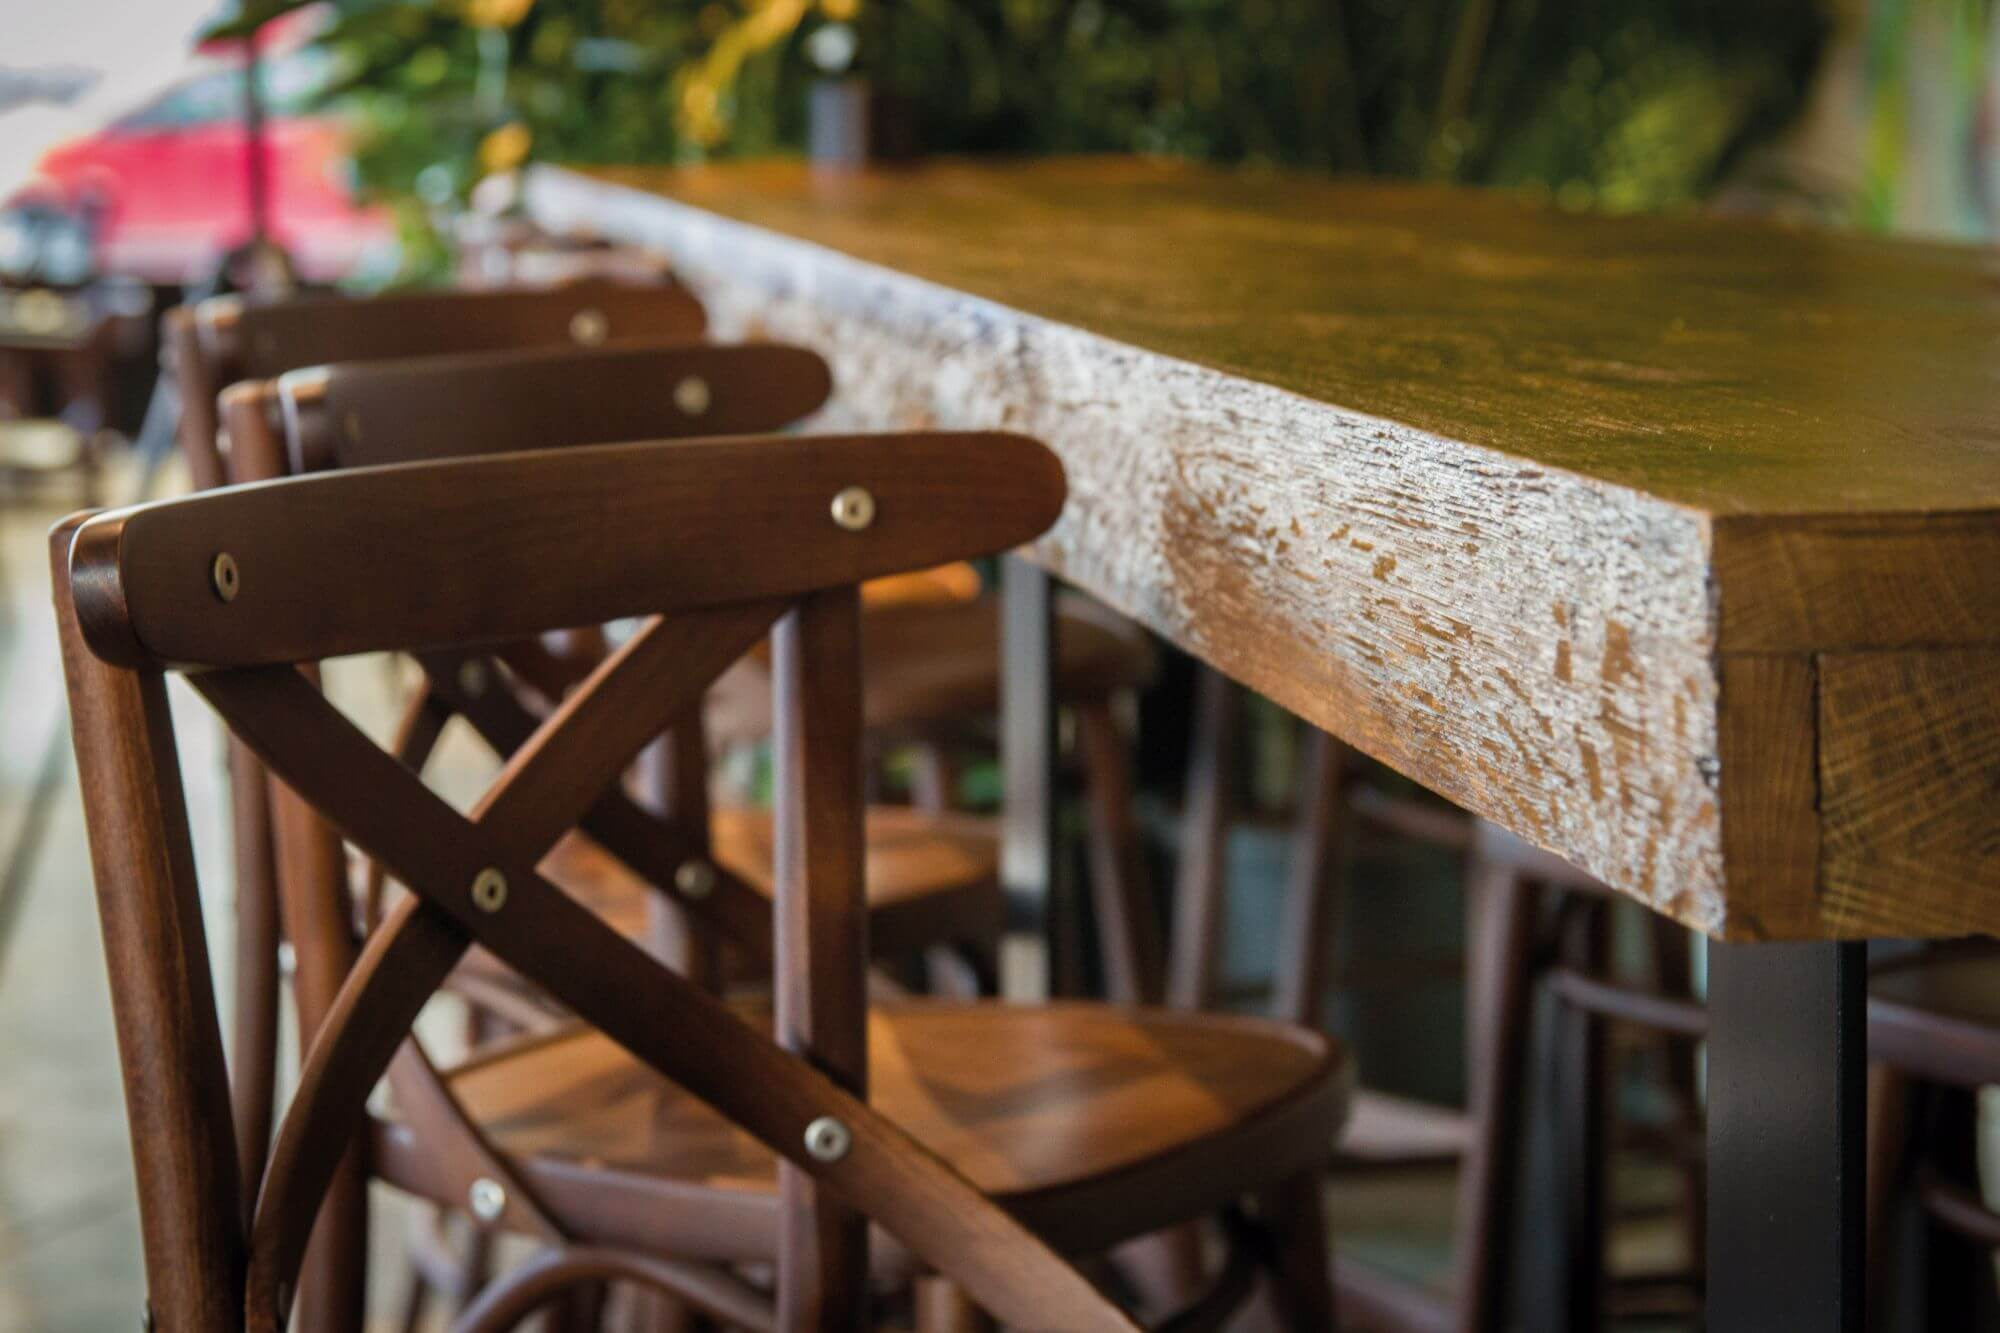 Natural wood finish from Rubio Monocoat used to protect restaurant tables and chairs.